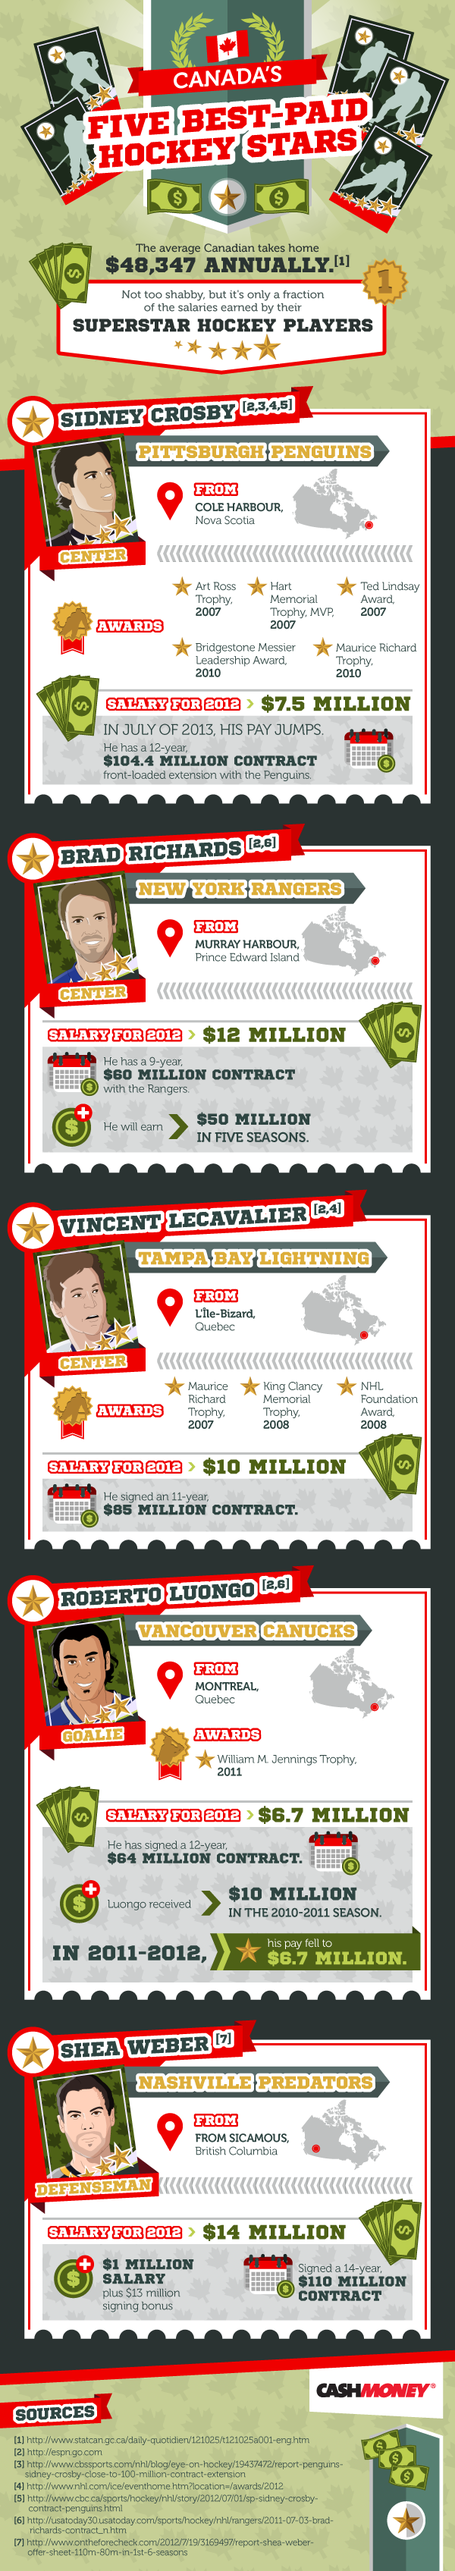 5_best_paid_canadian_hockey_stars_players_infographic_sidney_crosby_shea_weber_brad_richards_roberto_luongo_vincent_lecavalier_medium